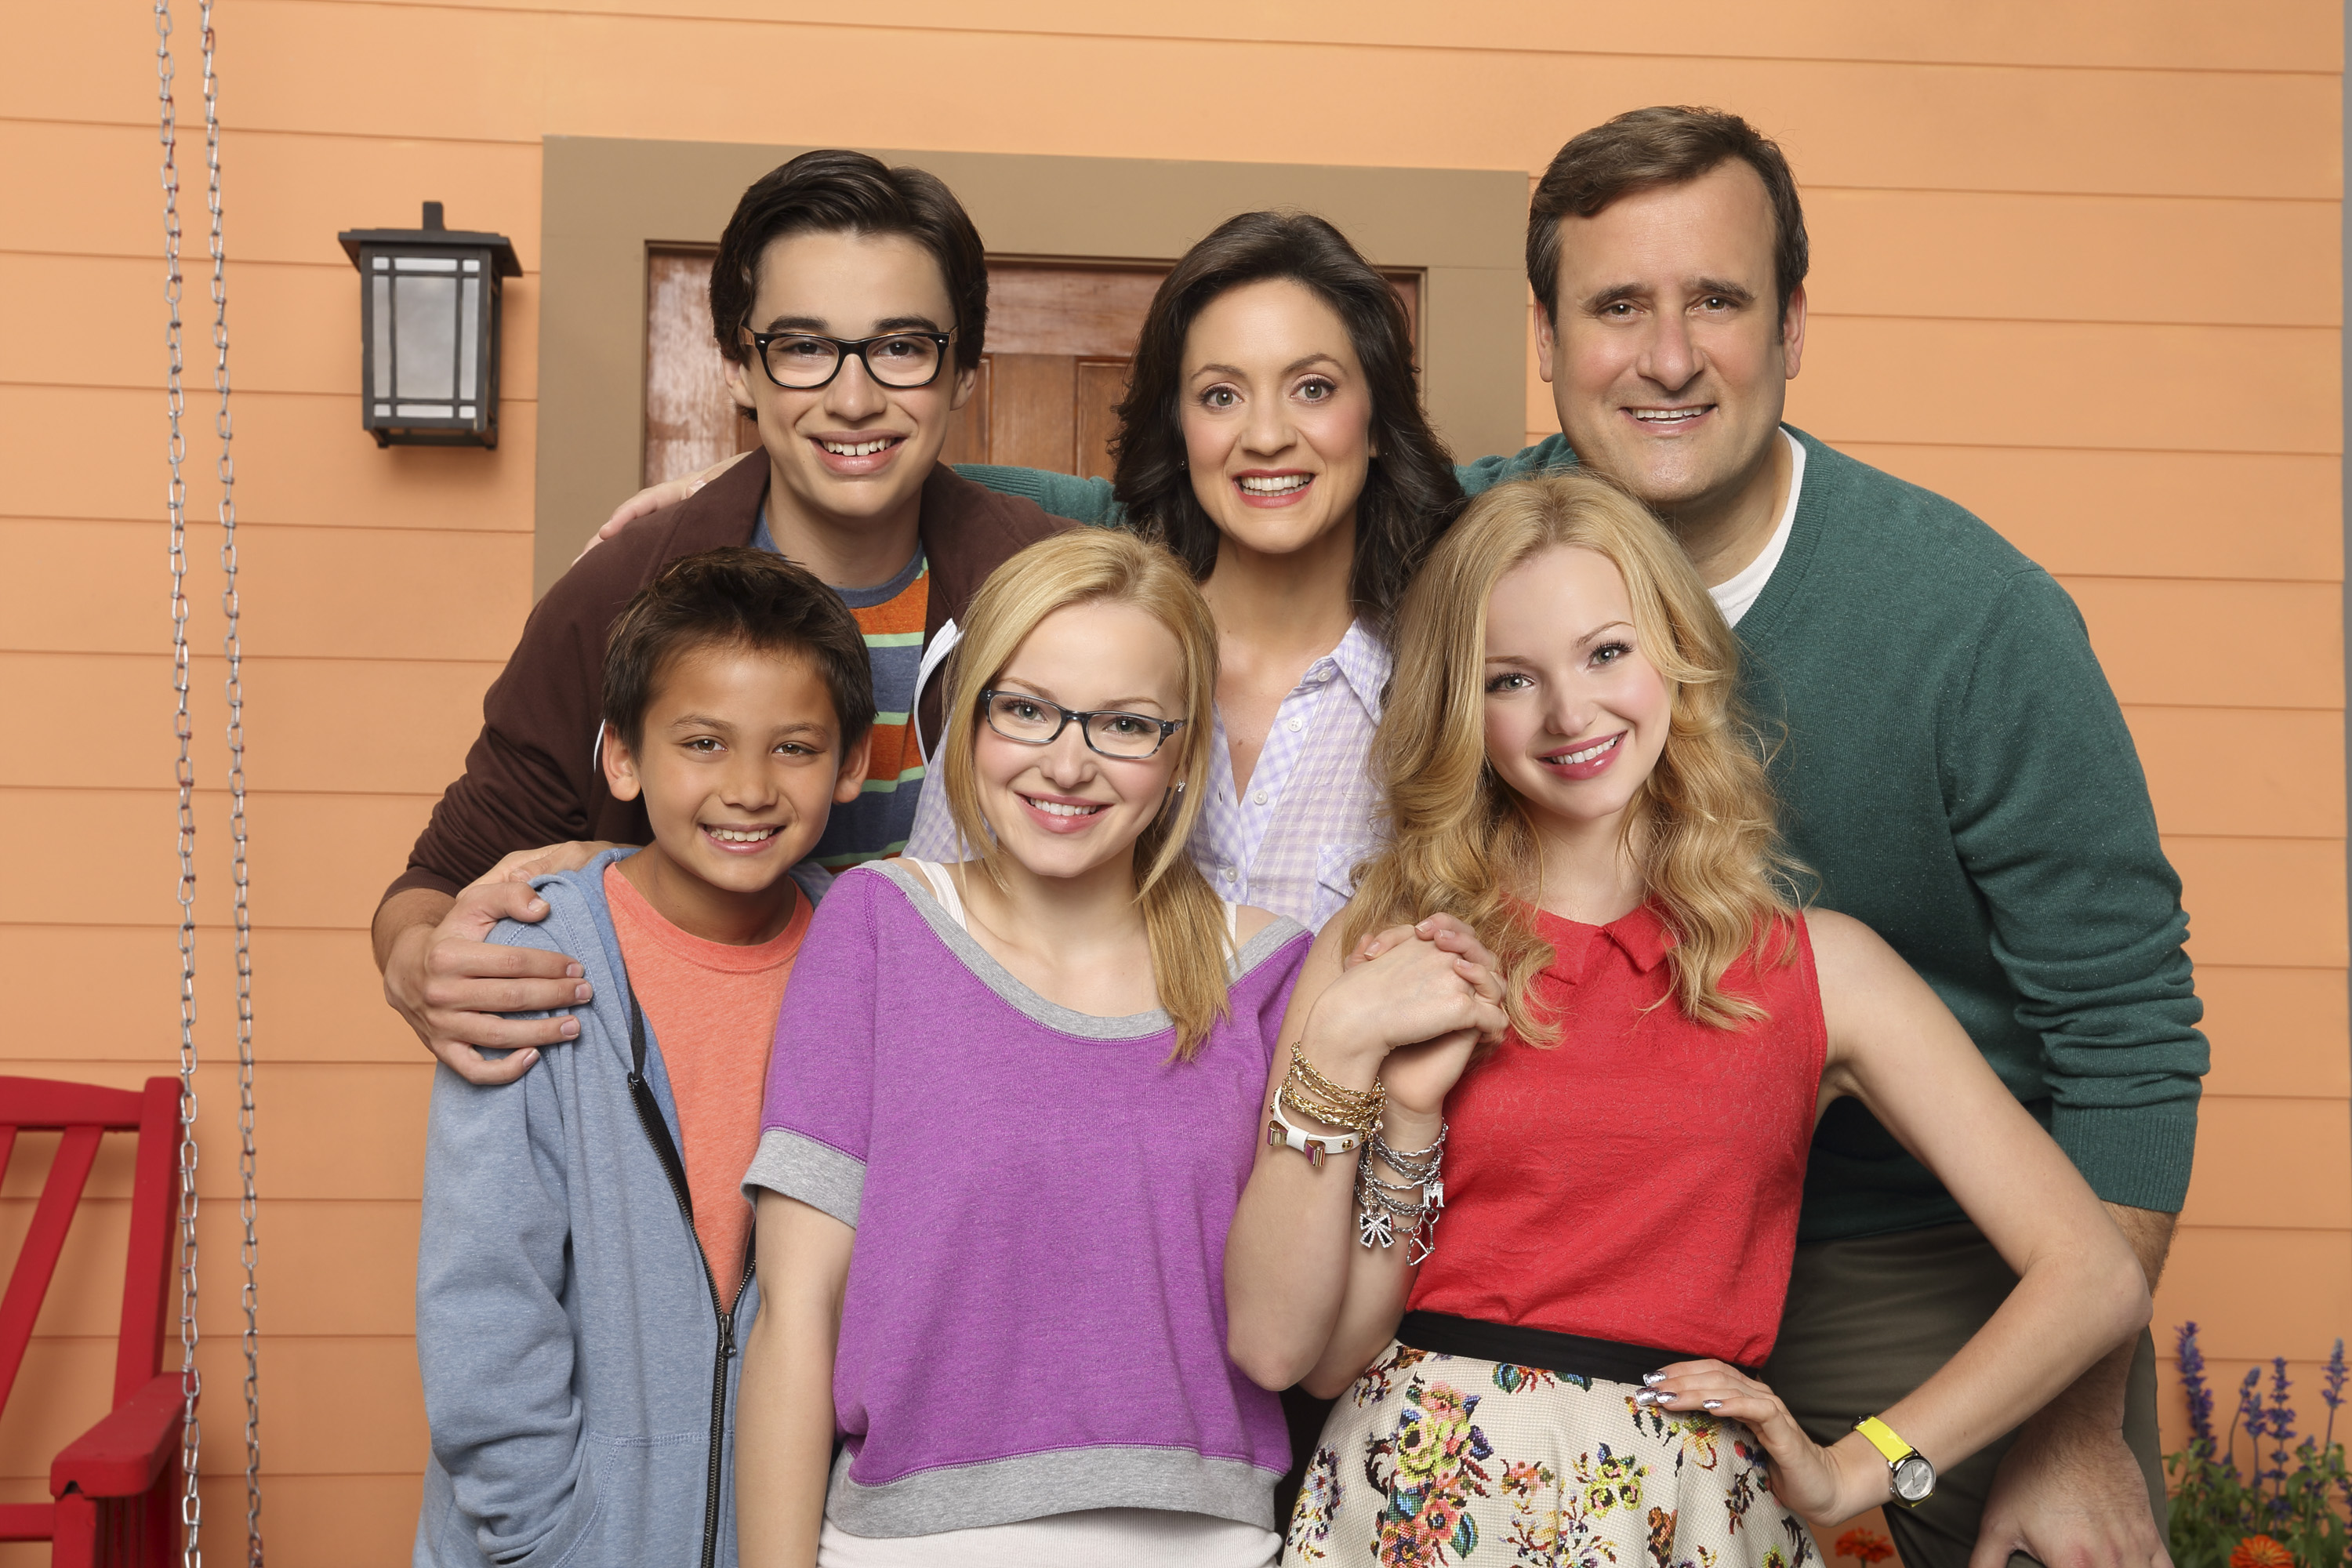 c77afdca6 Gone-A-RooneyIs 'Liv and Maddie' Over For Good?